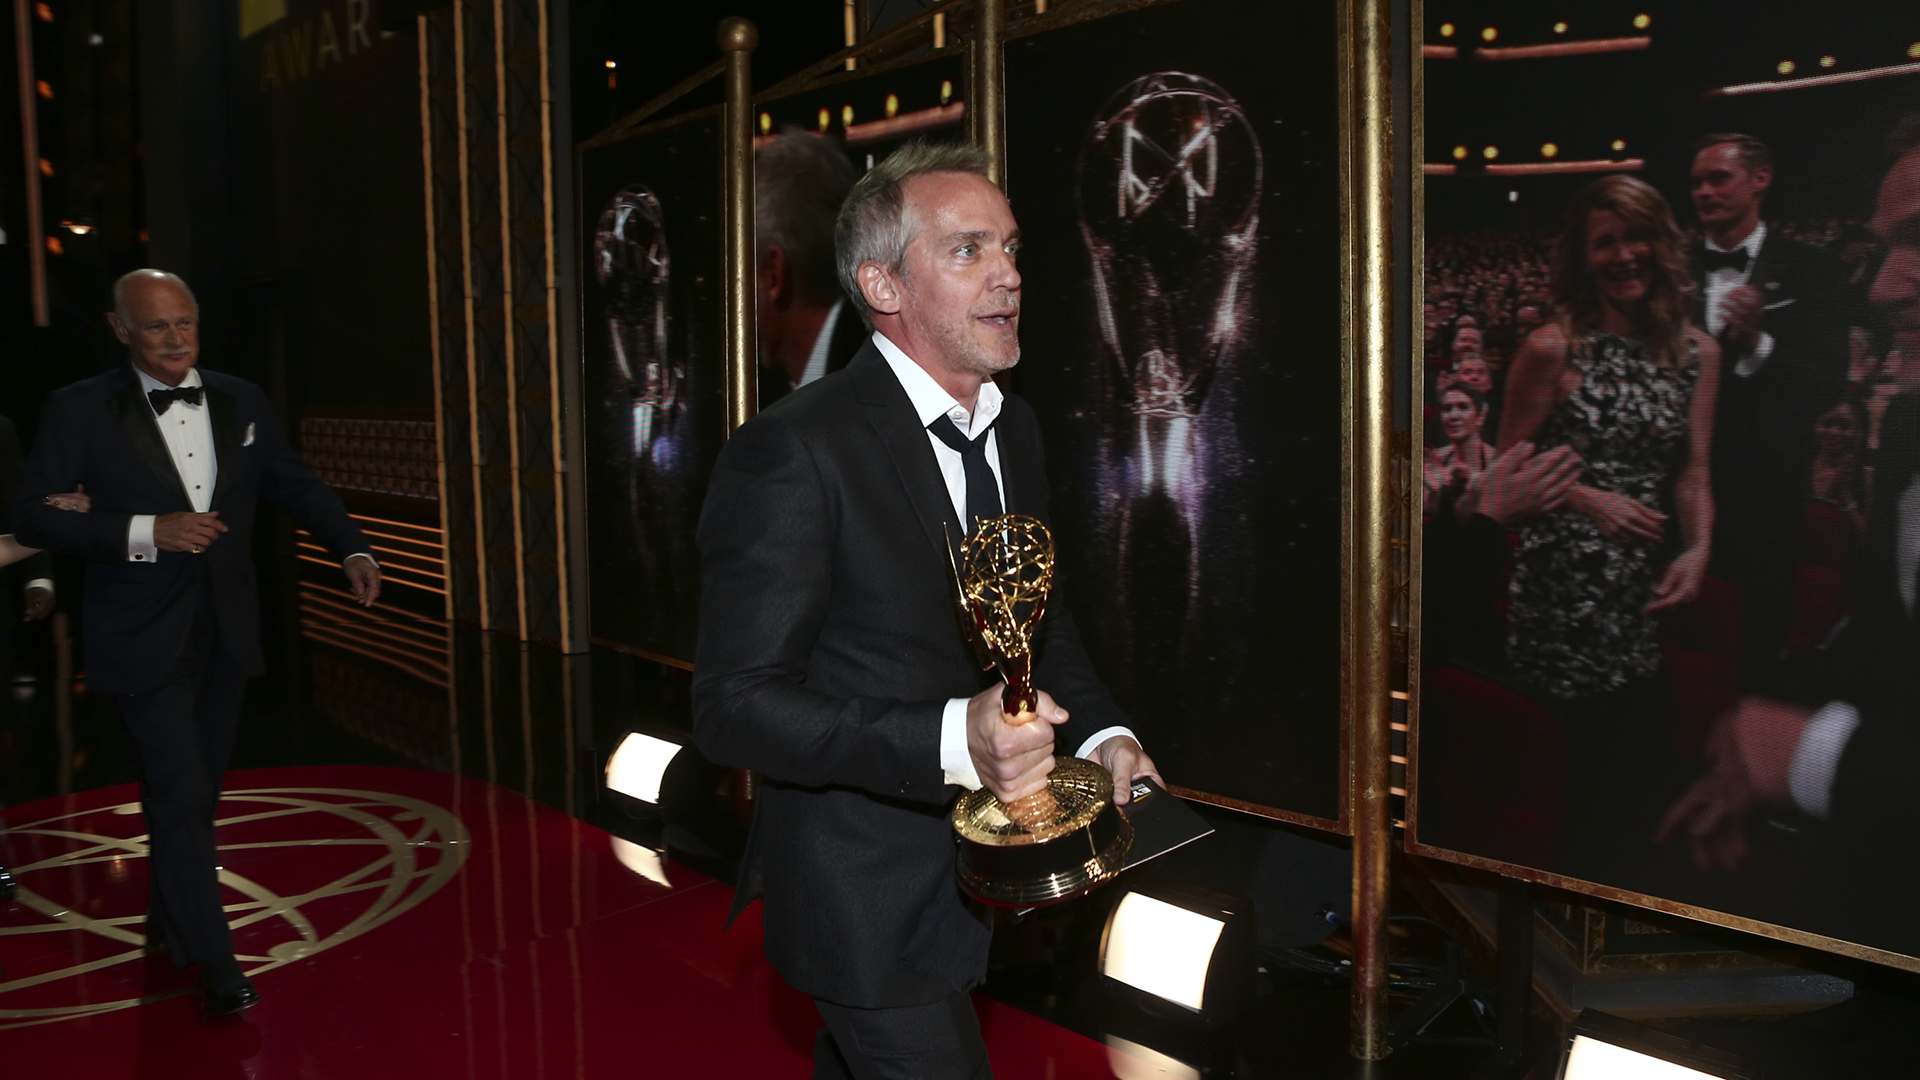 Jean-Marc Vallée wins Outstanding Directing for a Limited Series or Movie at The 69th Emmy Awards.